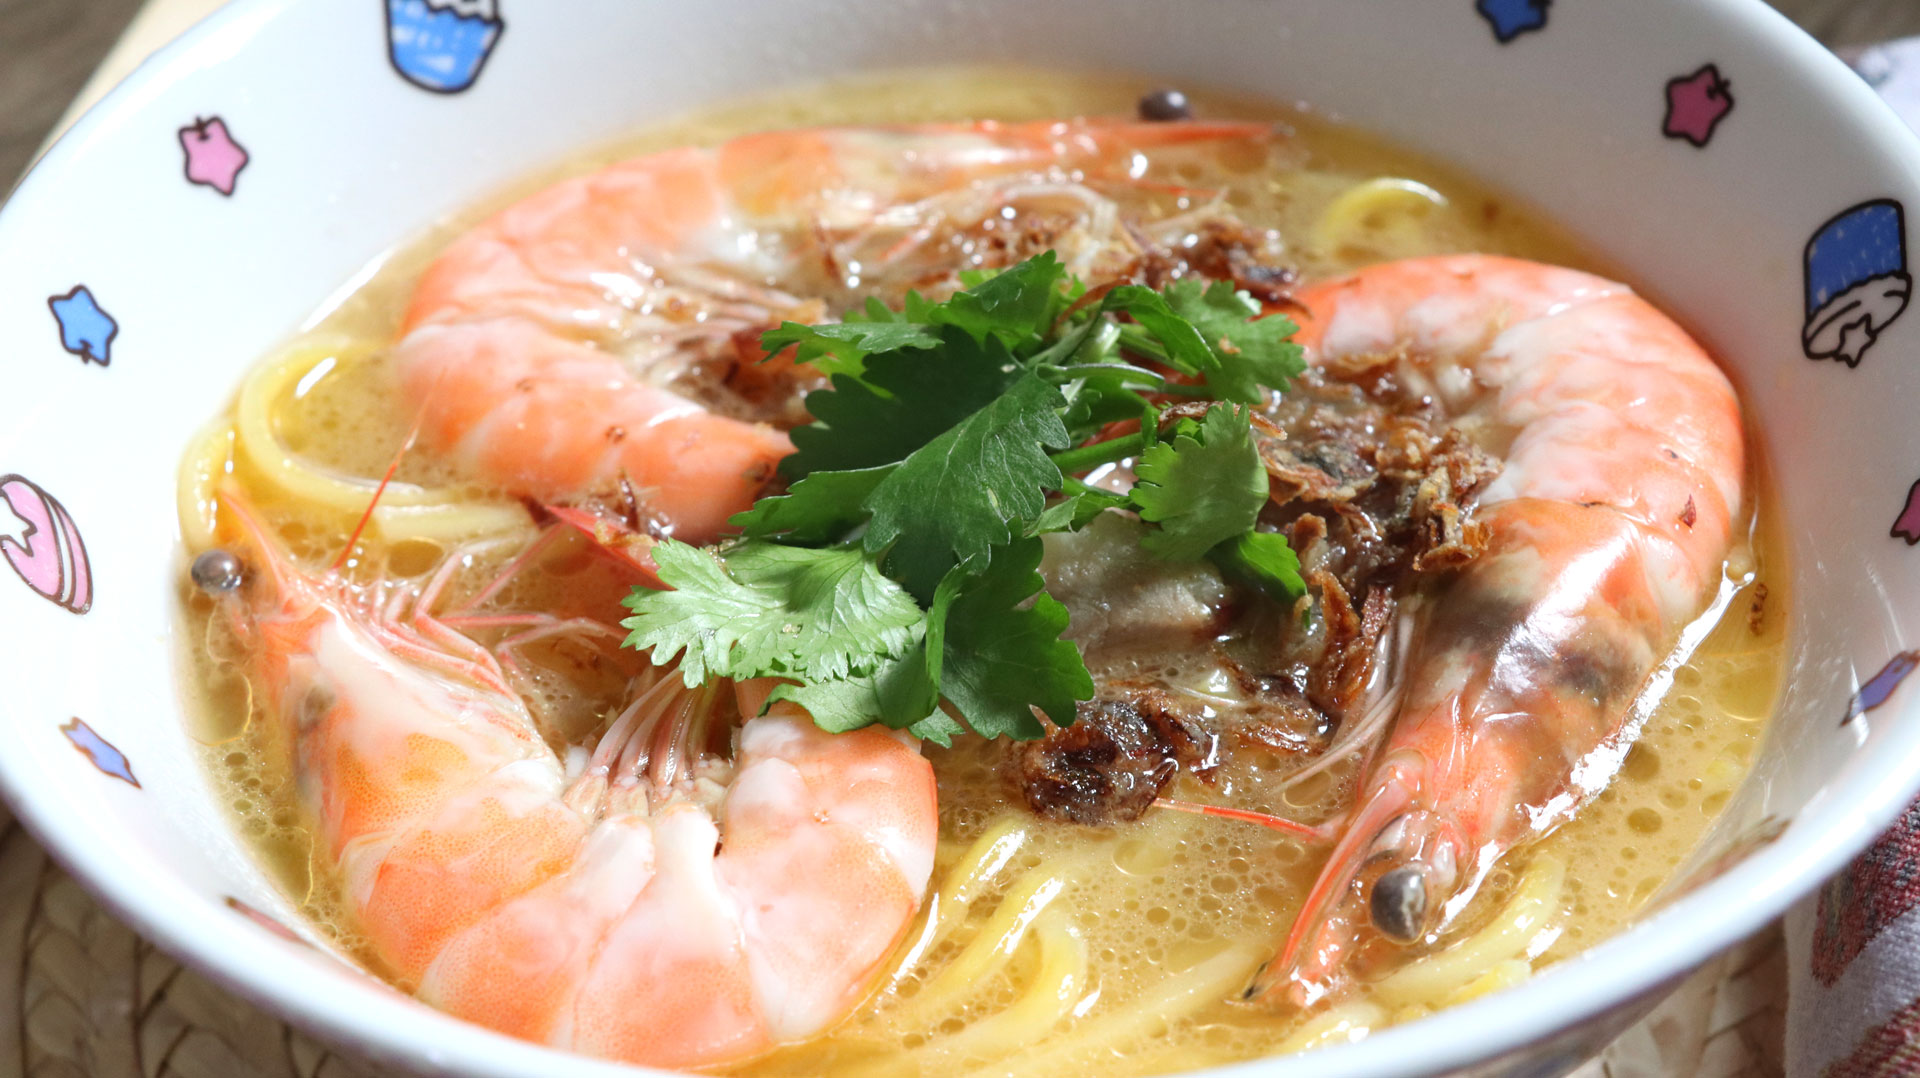 two-bad-chefs-prawn-noodle-dish-02.jpg